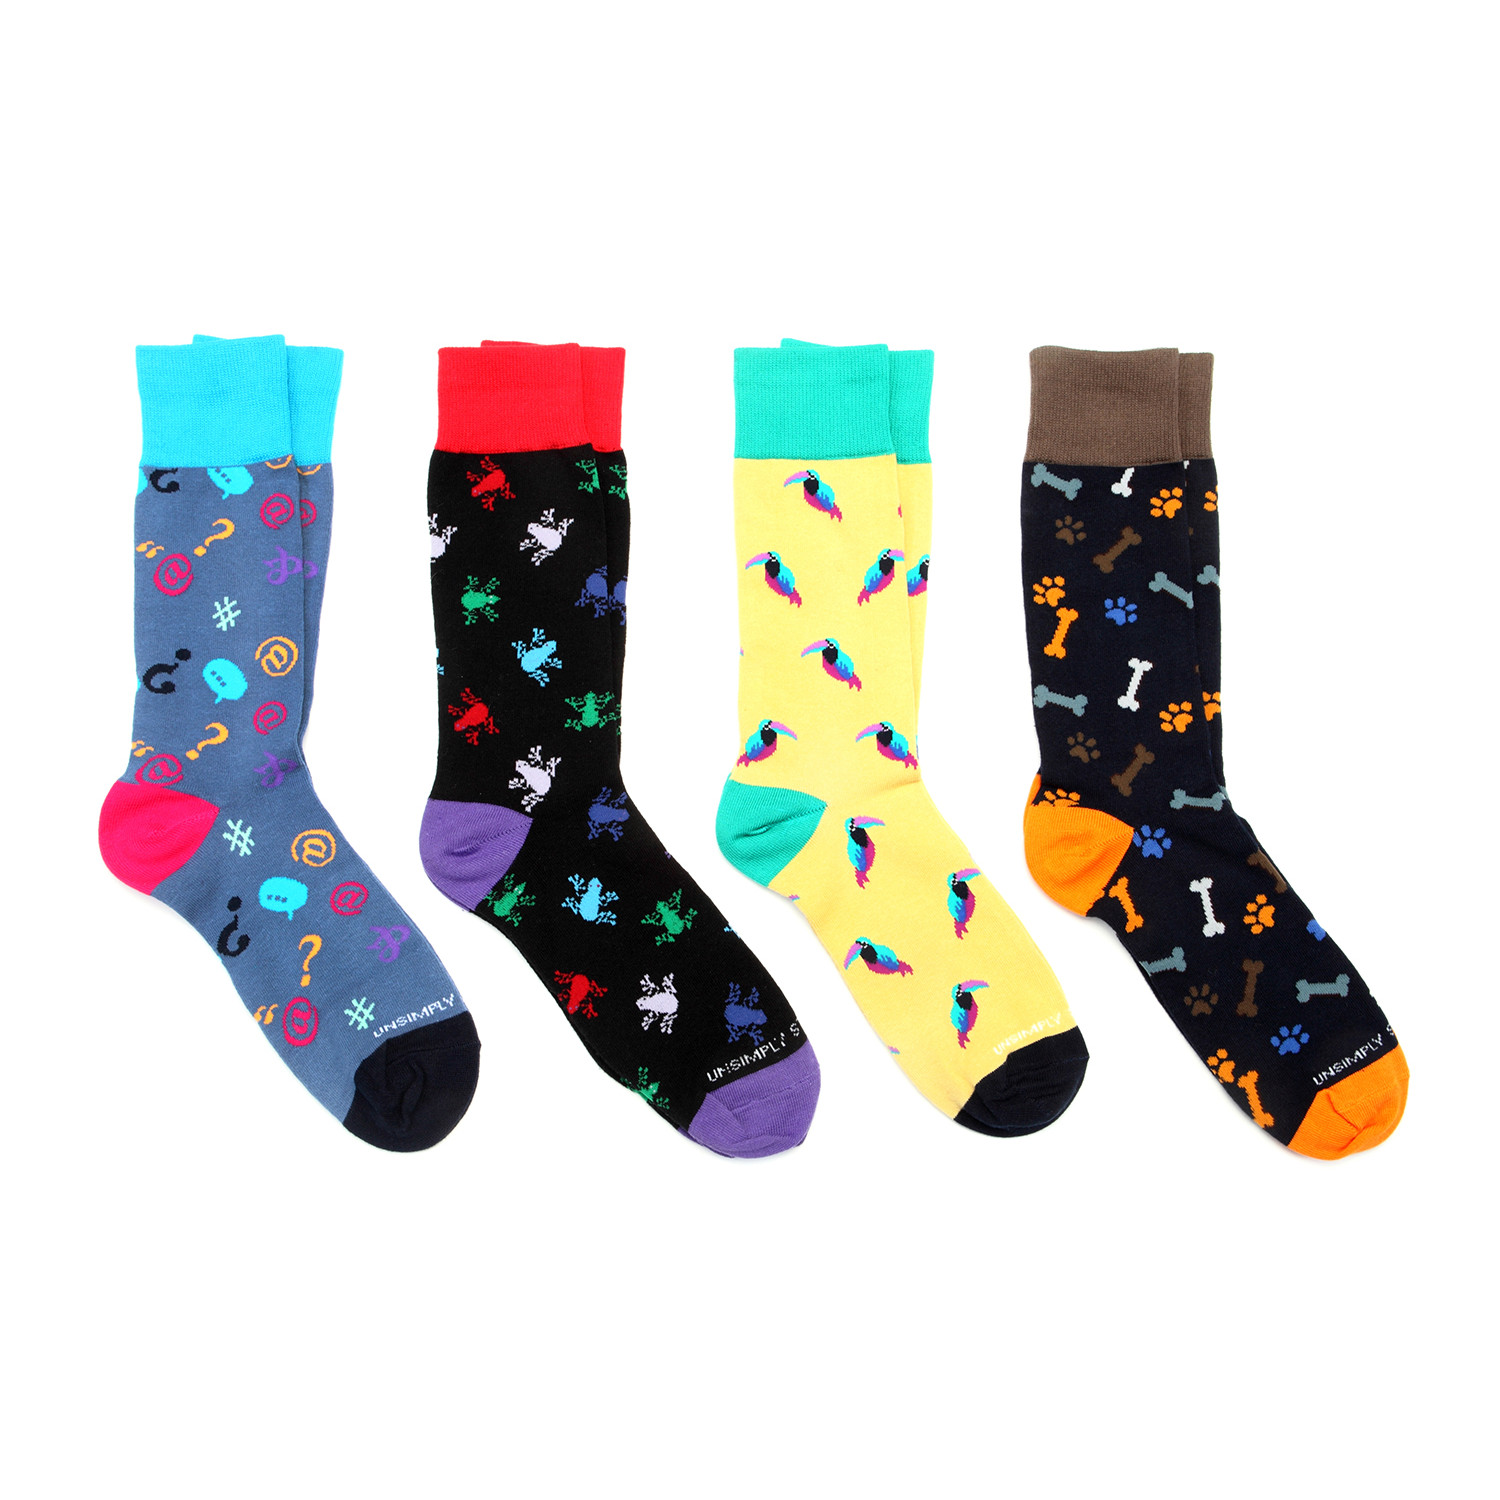 Dress socks animals pack of 4 unsimply stitched touch of